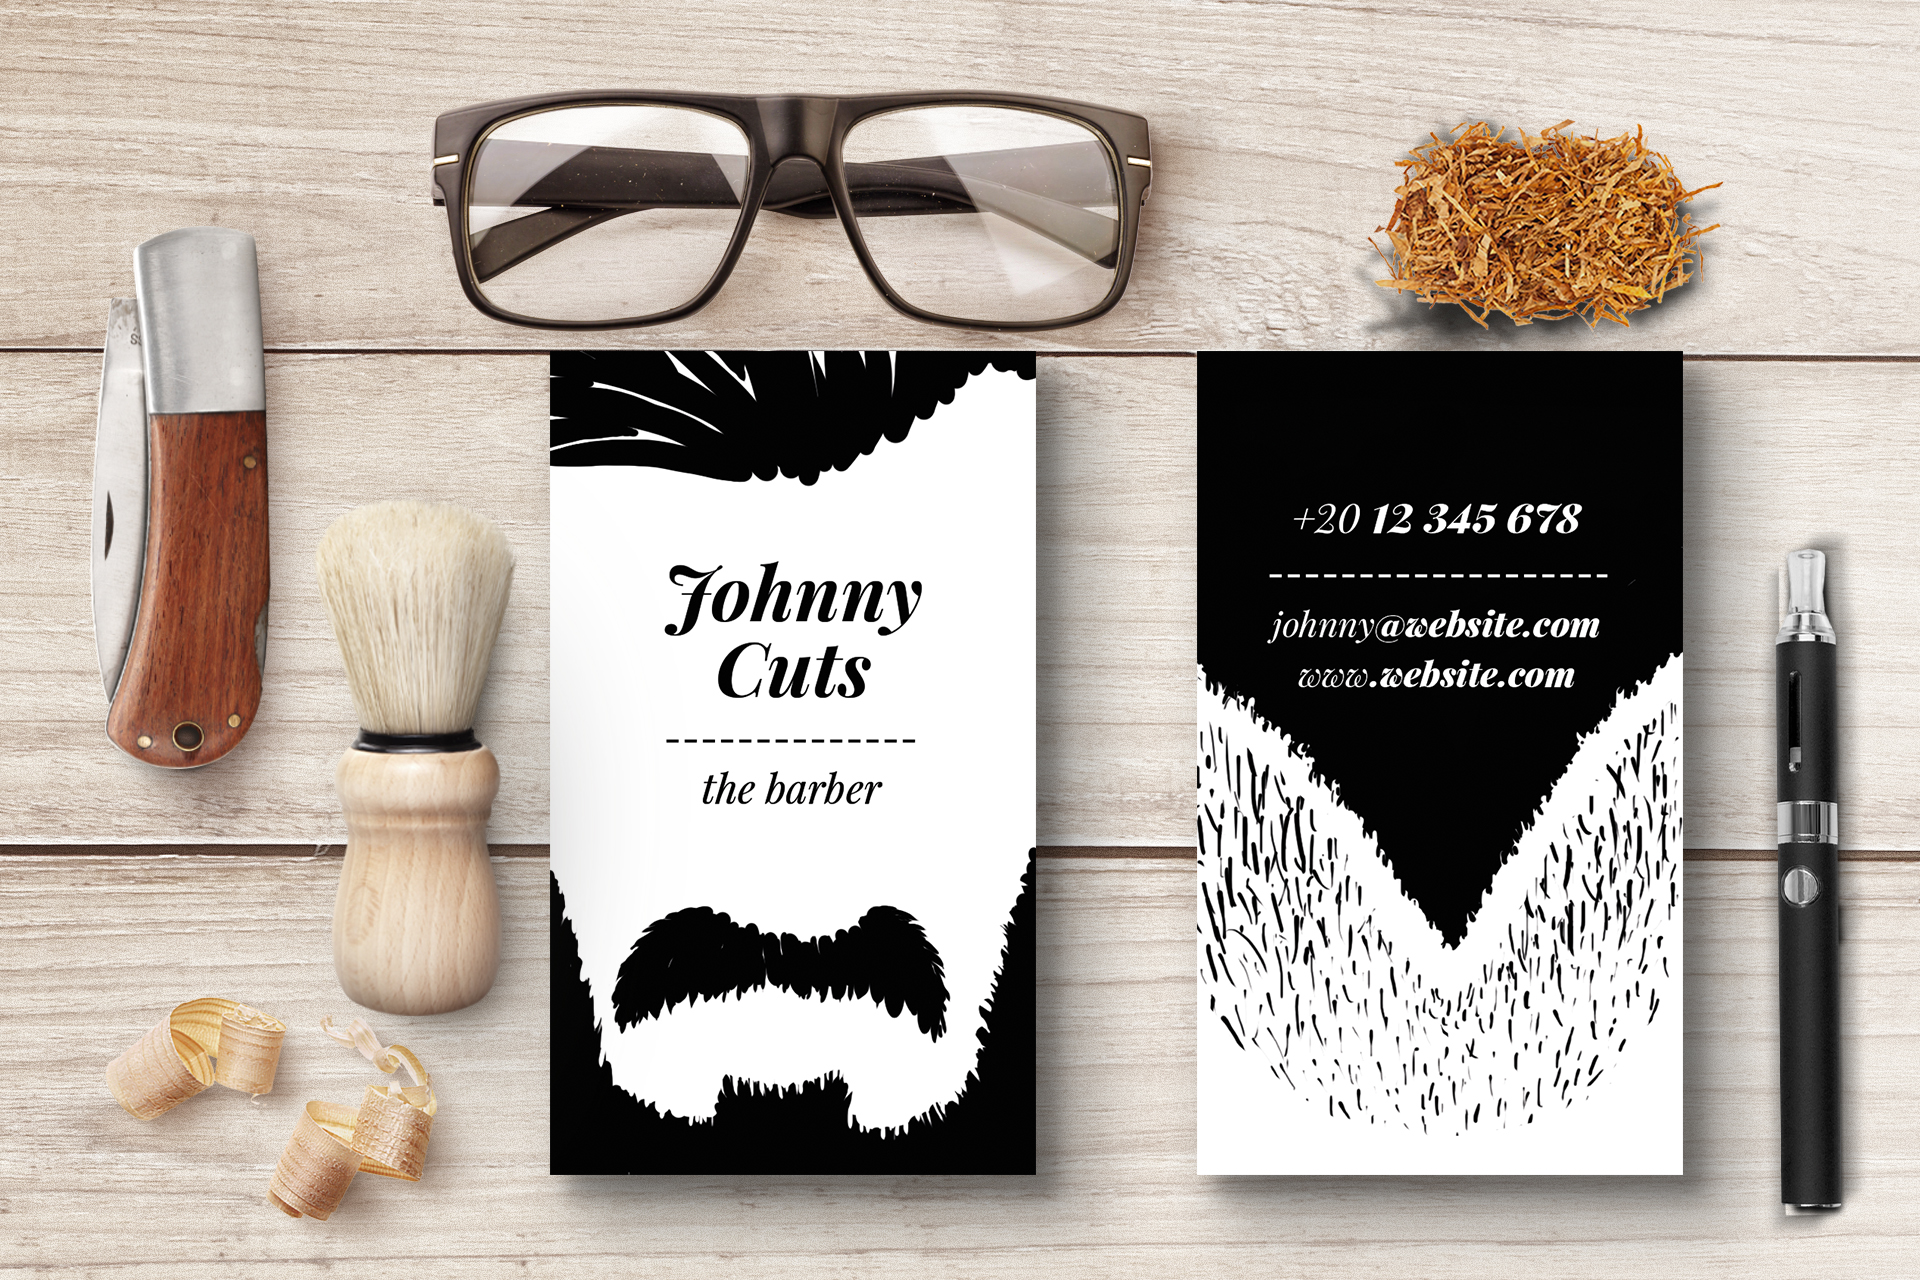 The Barber Business Cards Templates by | Design Bundles